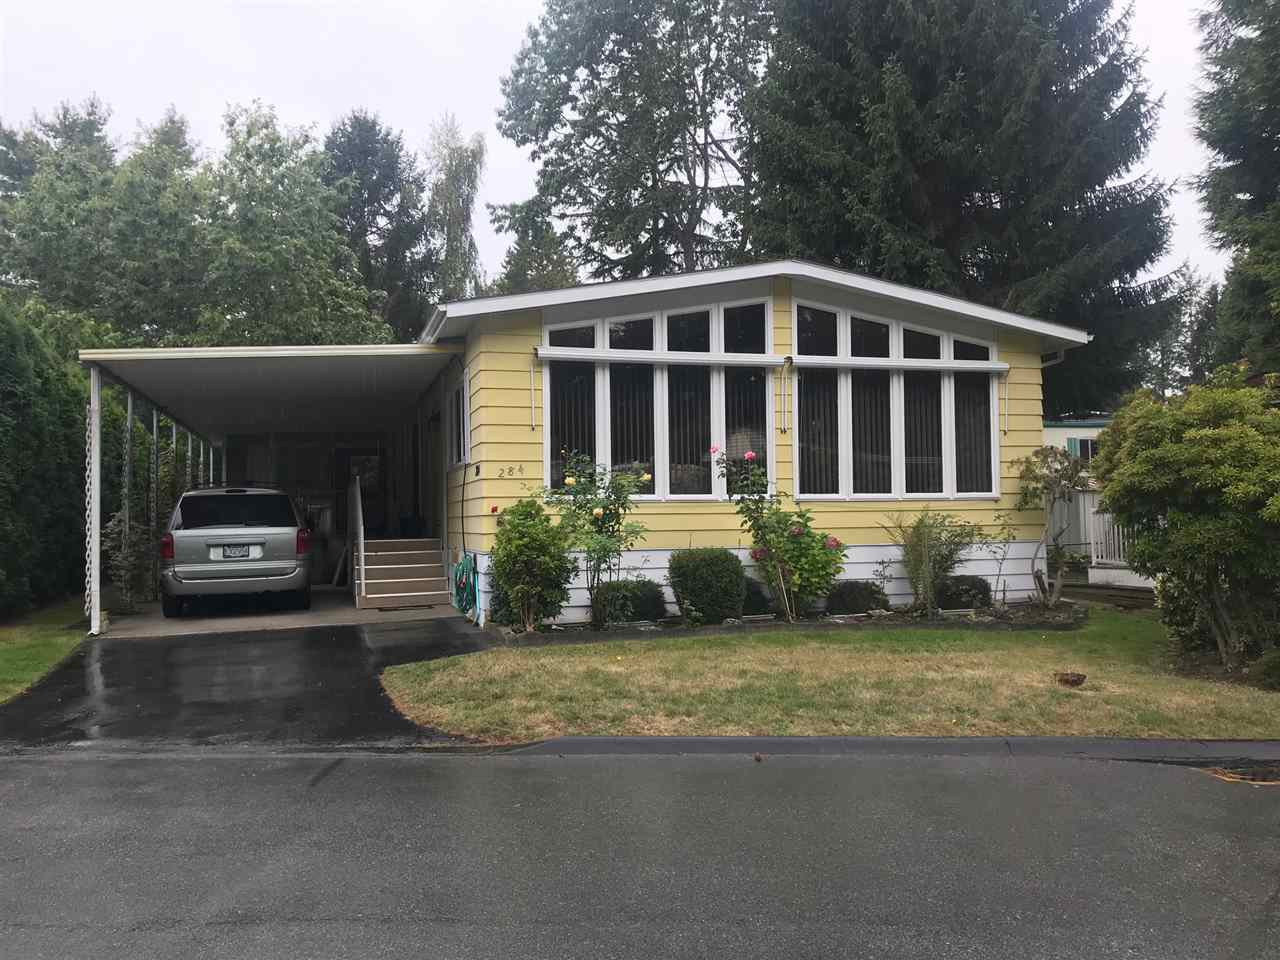 """Main Photo: 284 1840 160 Street in Surrey: King George Corridor Manufactured Home for sale in """"Breakaway Bays"""" (South Surrey White Rock)  : MLS®# R2405064"""